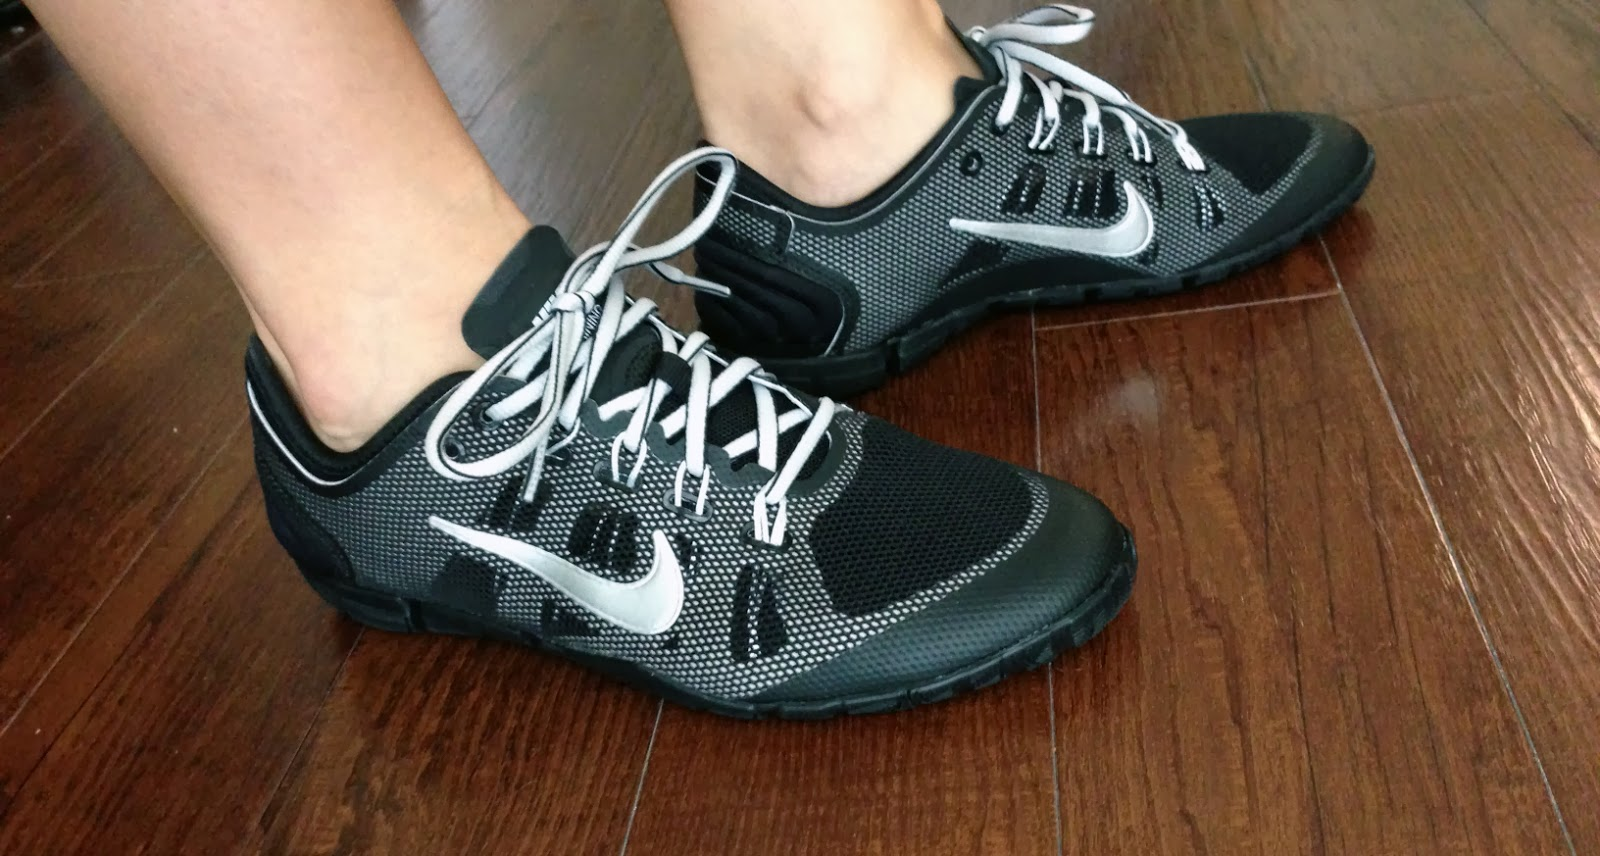 separation shoes 8d07e 47e94 My Superficial Endeavors  Nike Free Bionic Training Shoe - Black Silver